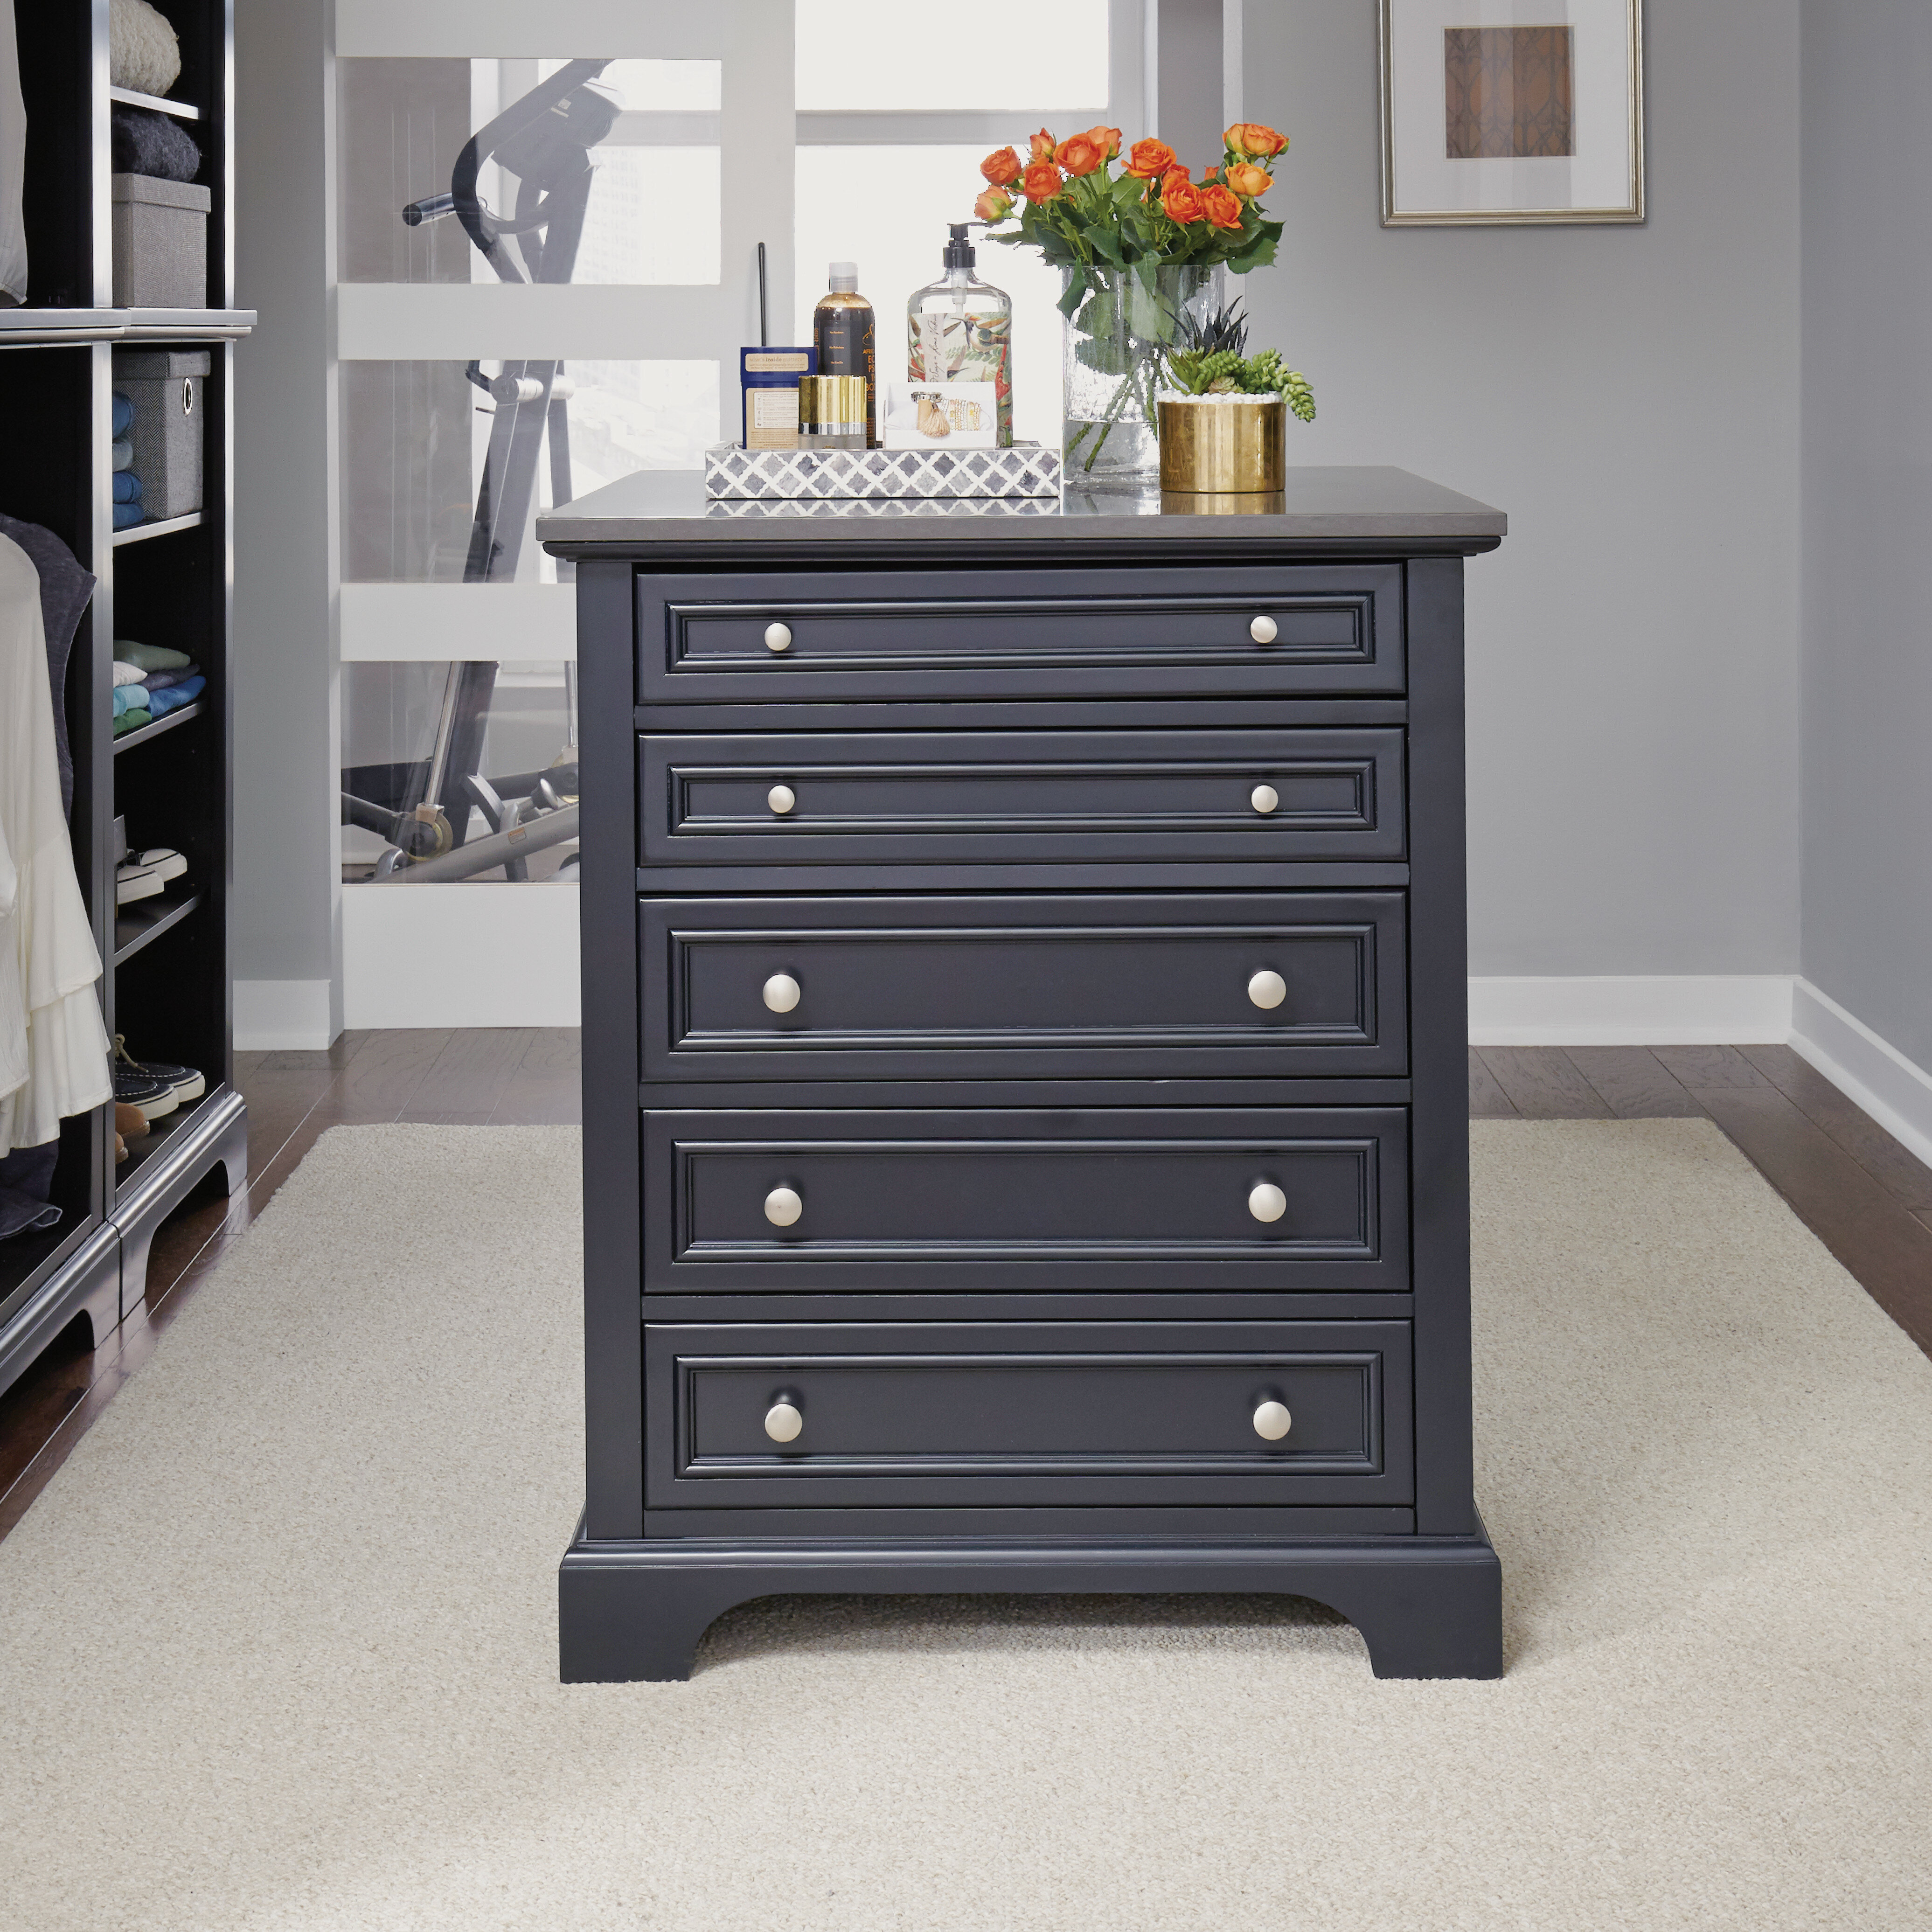 w pdp system berriman storage chest main for closet joss of reviews drawers